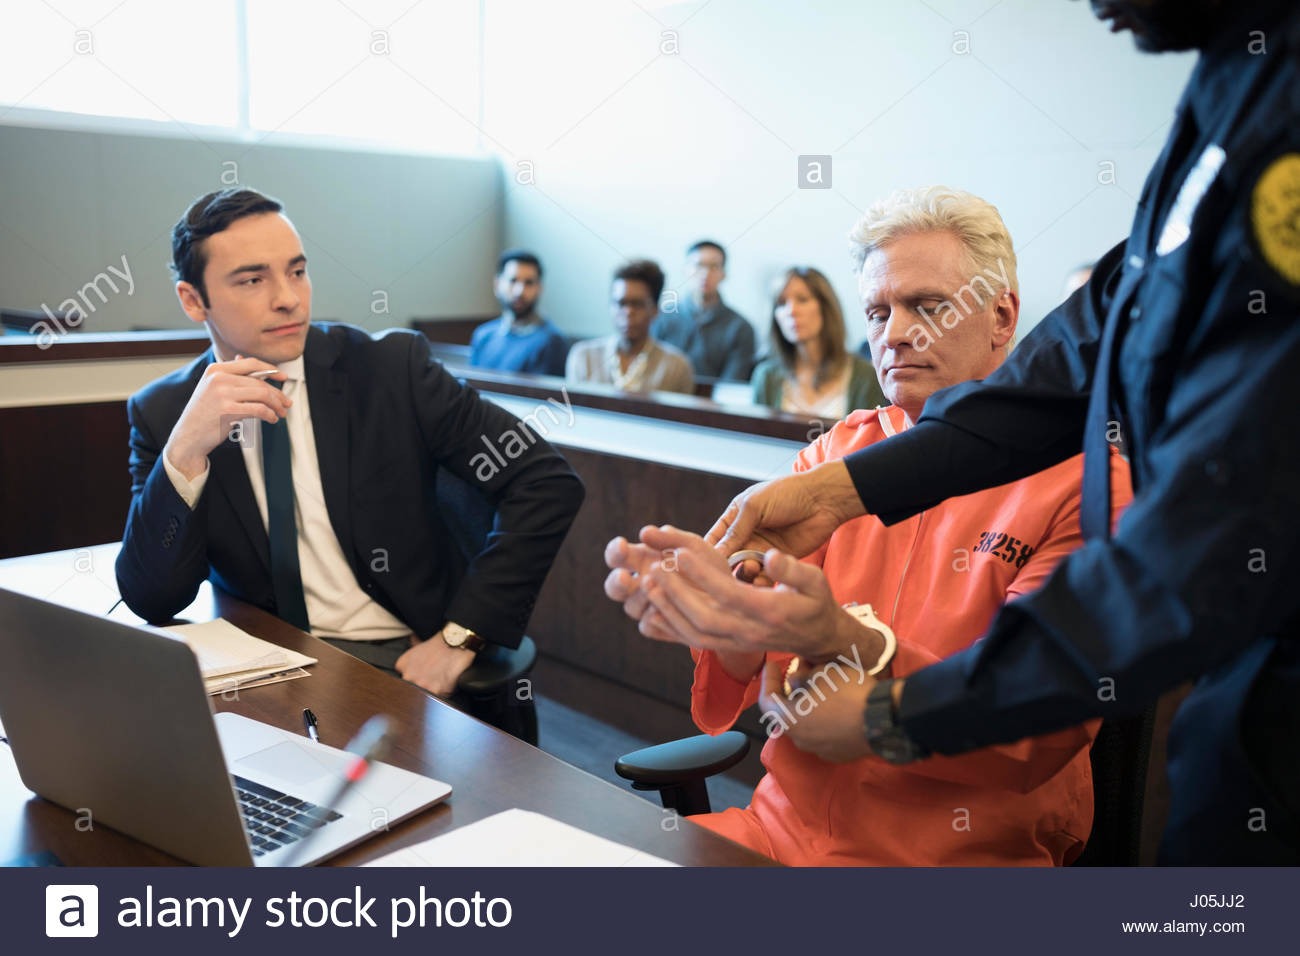 Bailiff handcuffing defendant criminal at table in legal trial courtroom - Stock Image